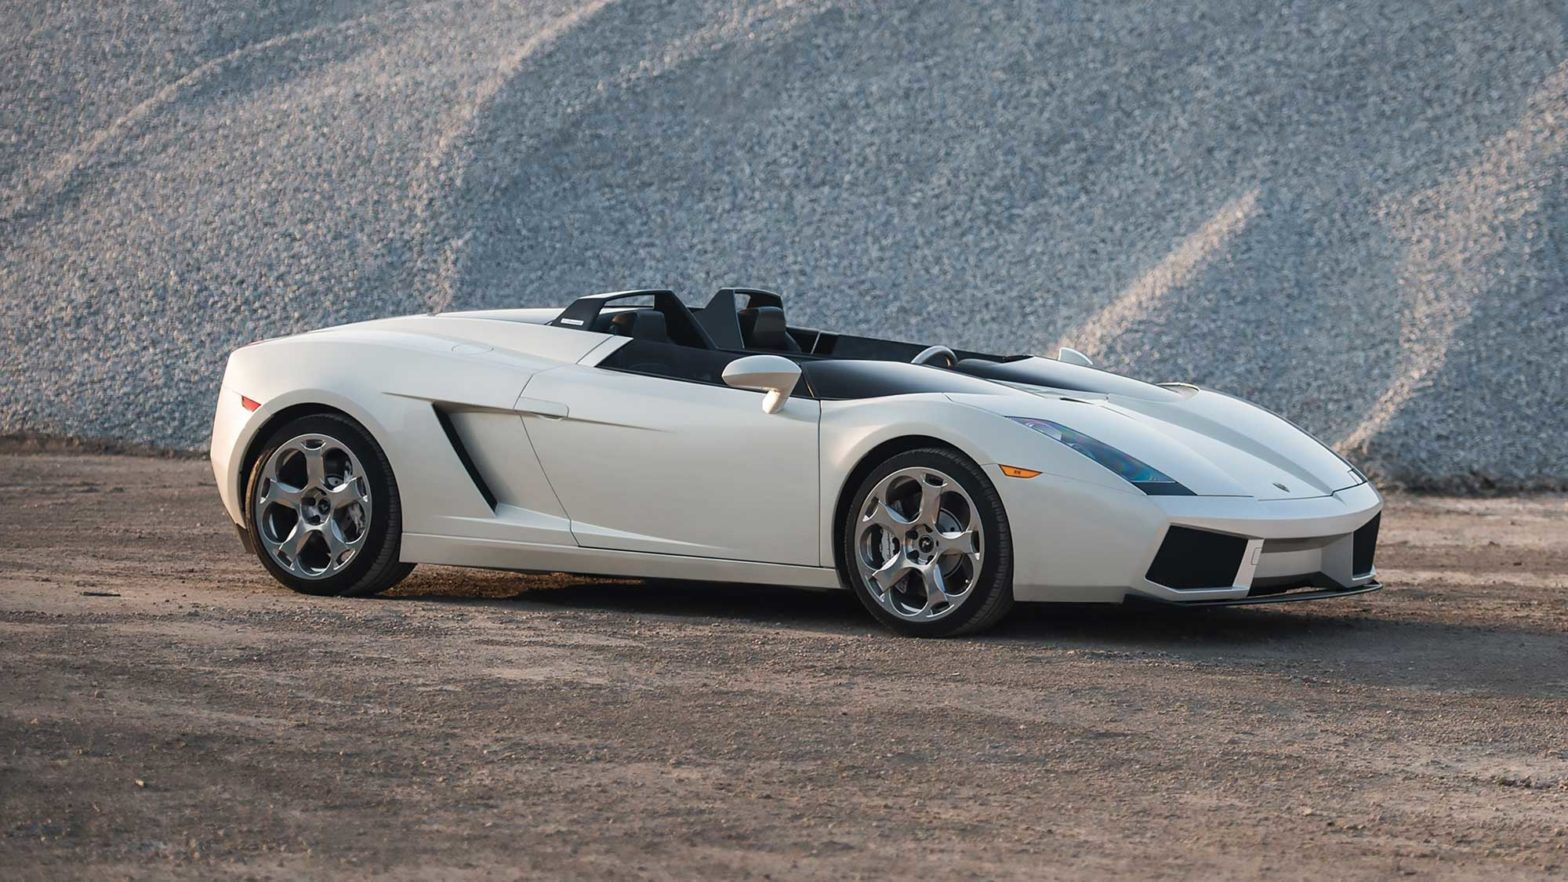 2006 Lamborghini Concept S Auction